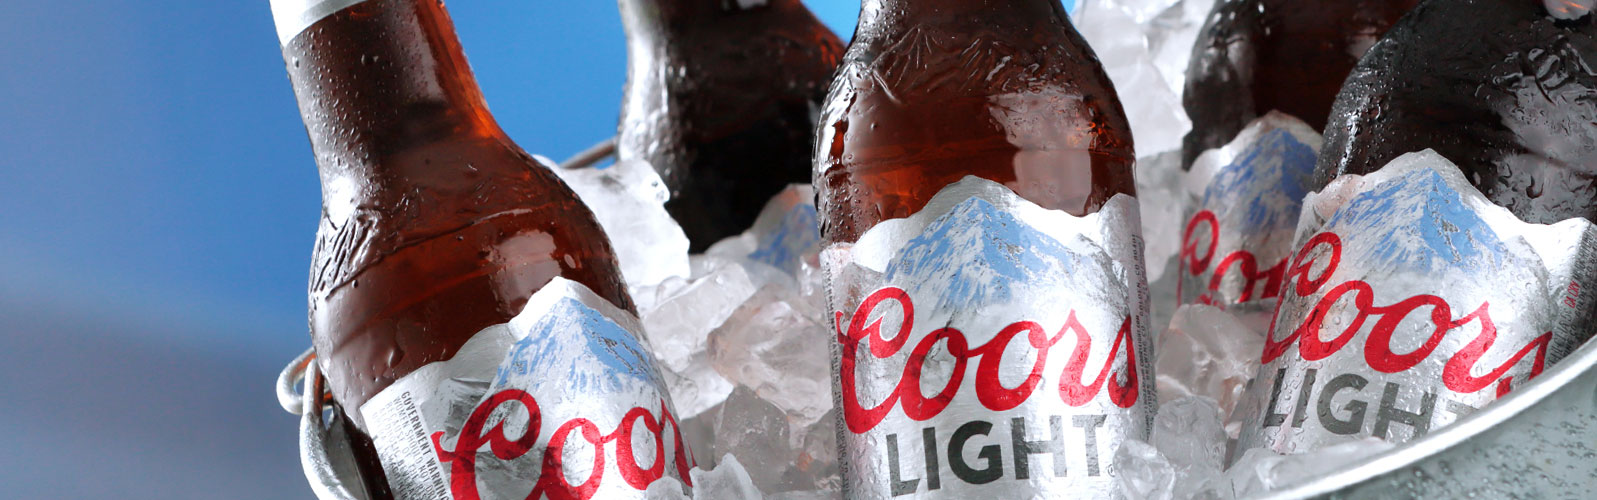 Coors Light mountains label by Inland